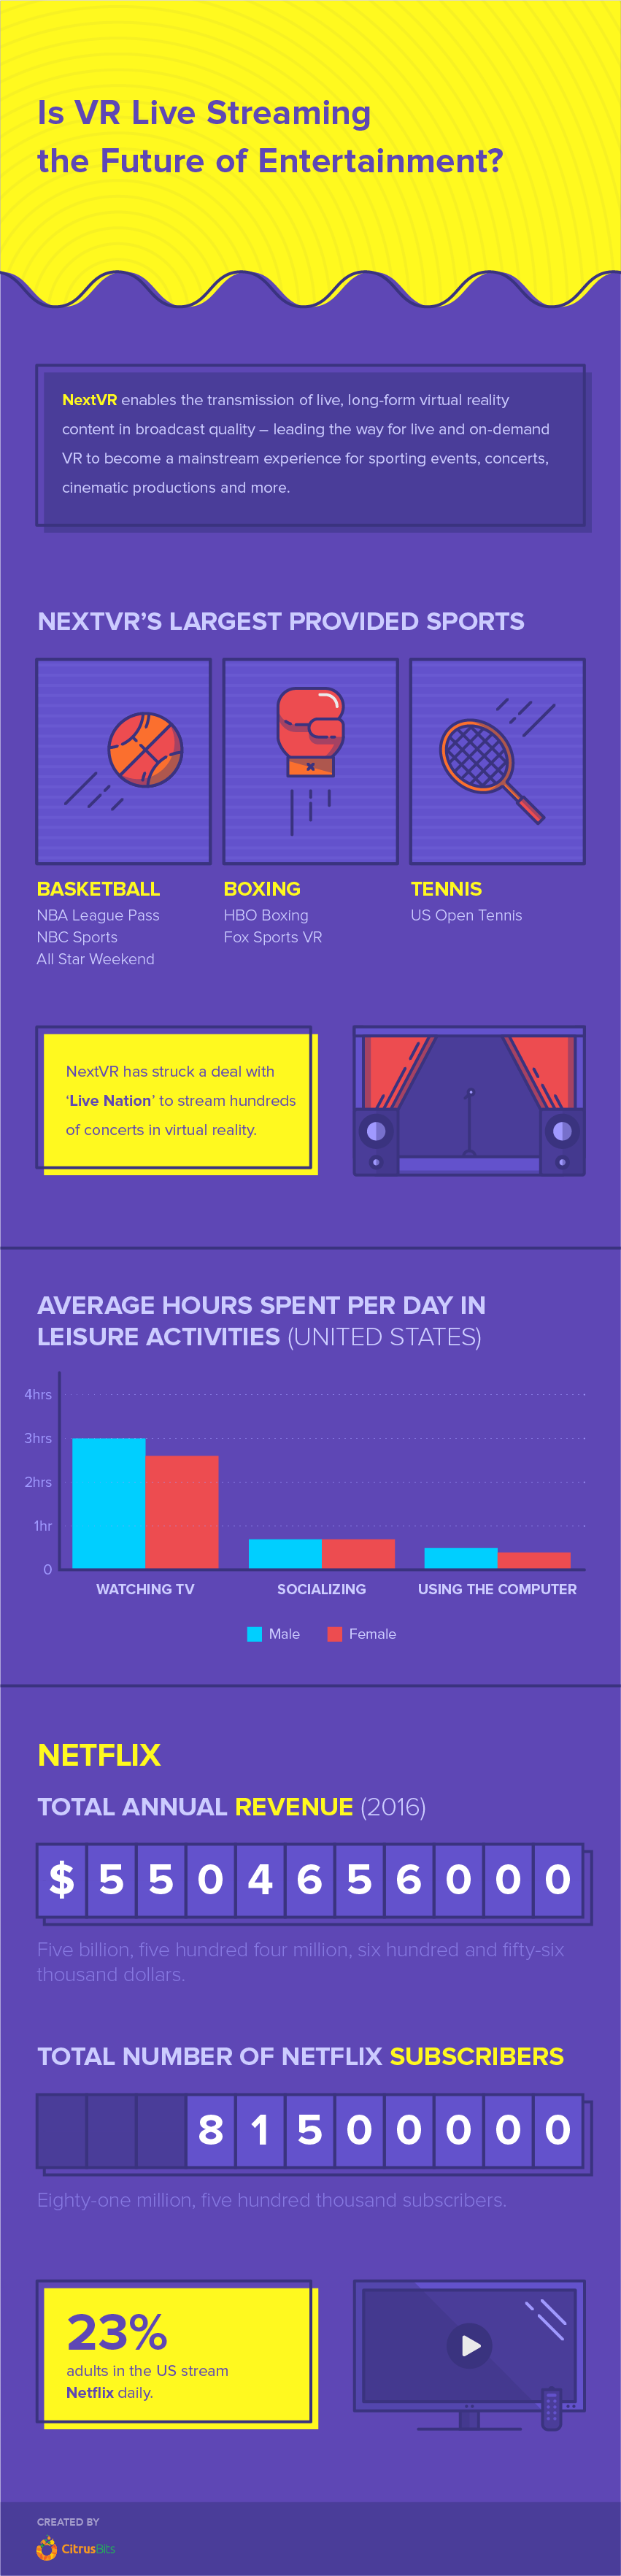 Is VR Live Streaming the Future of Entertainment? [ INFOGRAPHIC ]